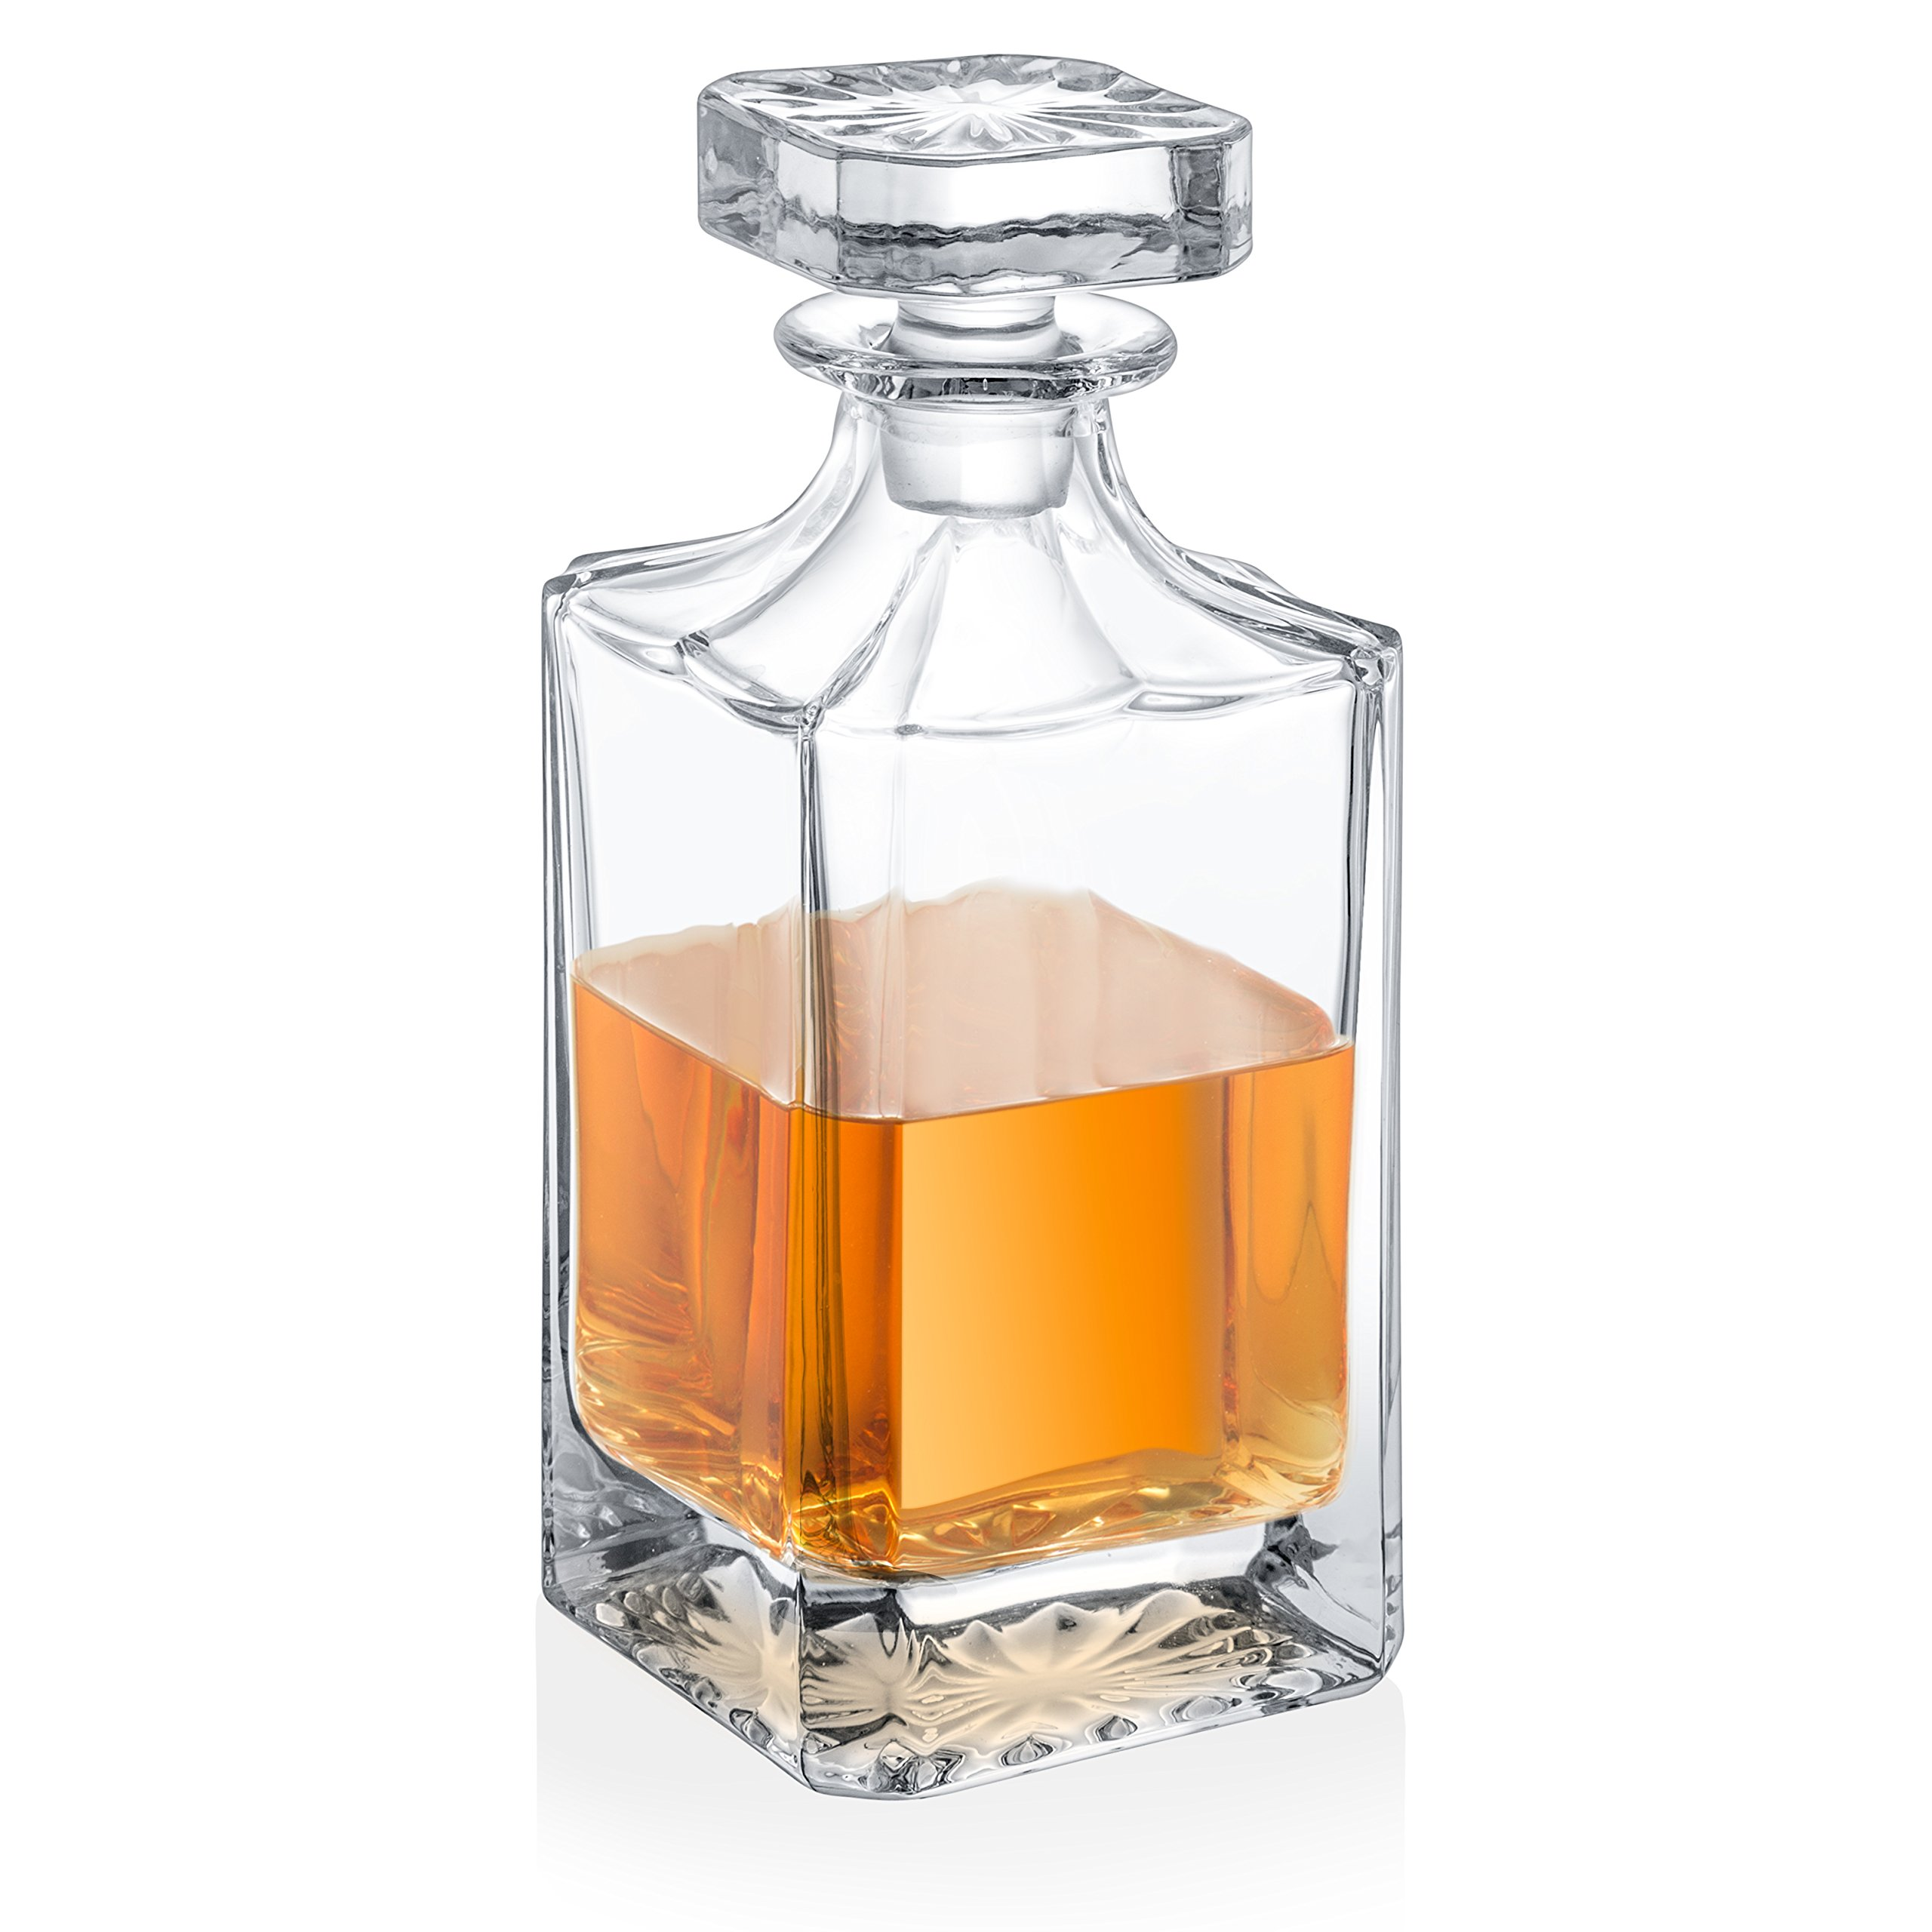 Trinkware Norwalk Whiskey Decanter | Real Glass Liquor Carafe With Stopper - Use For Scotch Wine Whiskey Bourbon Tequila | Lead Free | Capacity 24oz. / 700ml